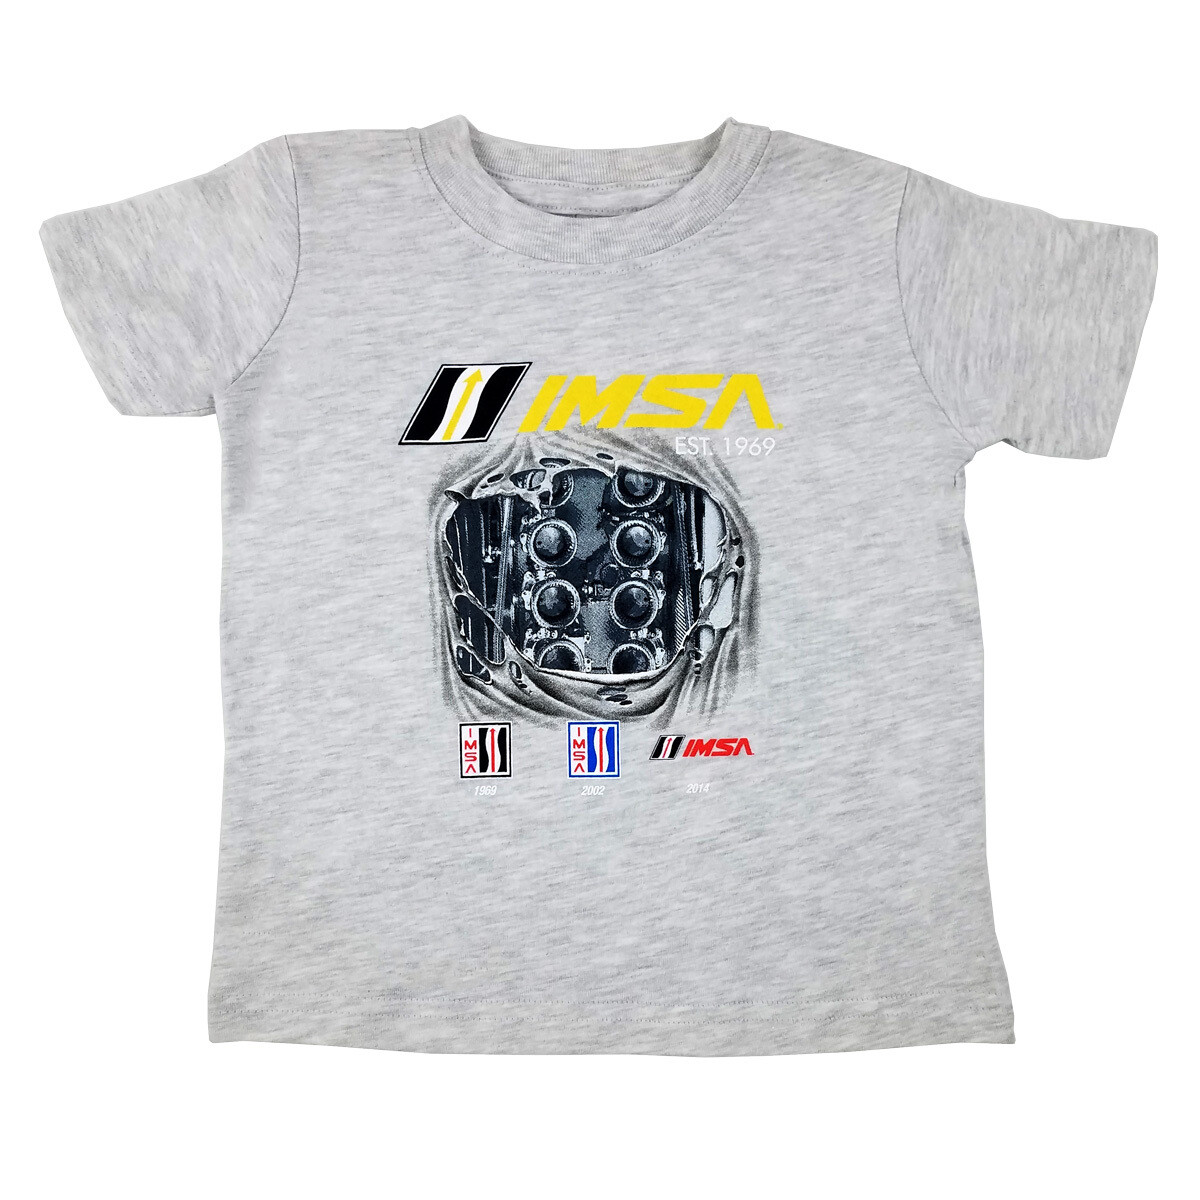 IMSA Infant Breakthrough Tee- Ash Grey